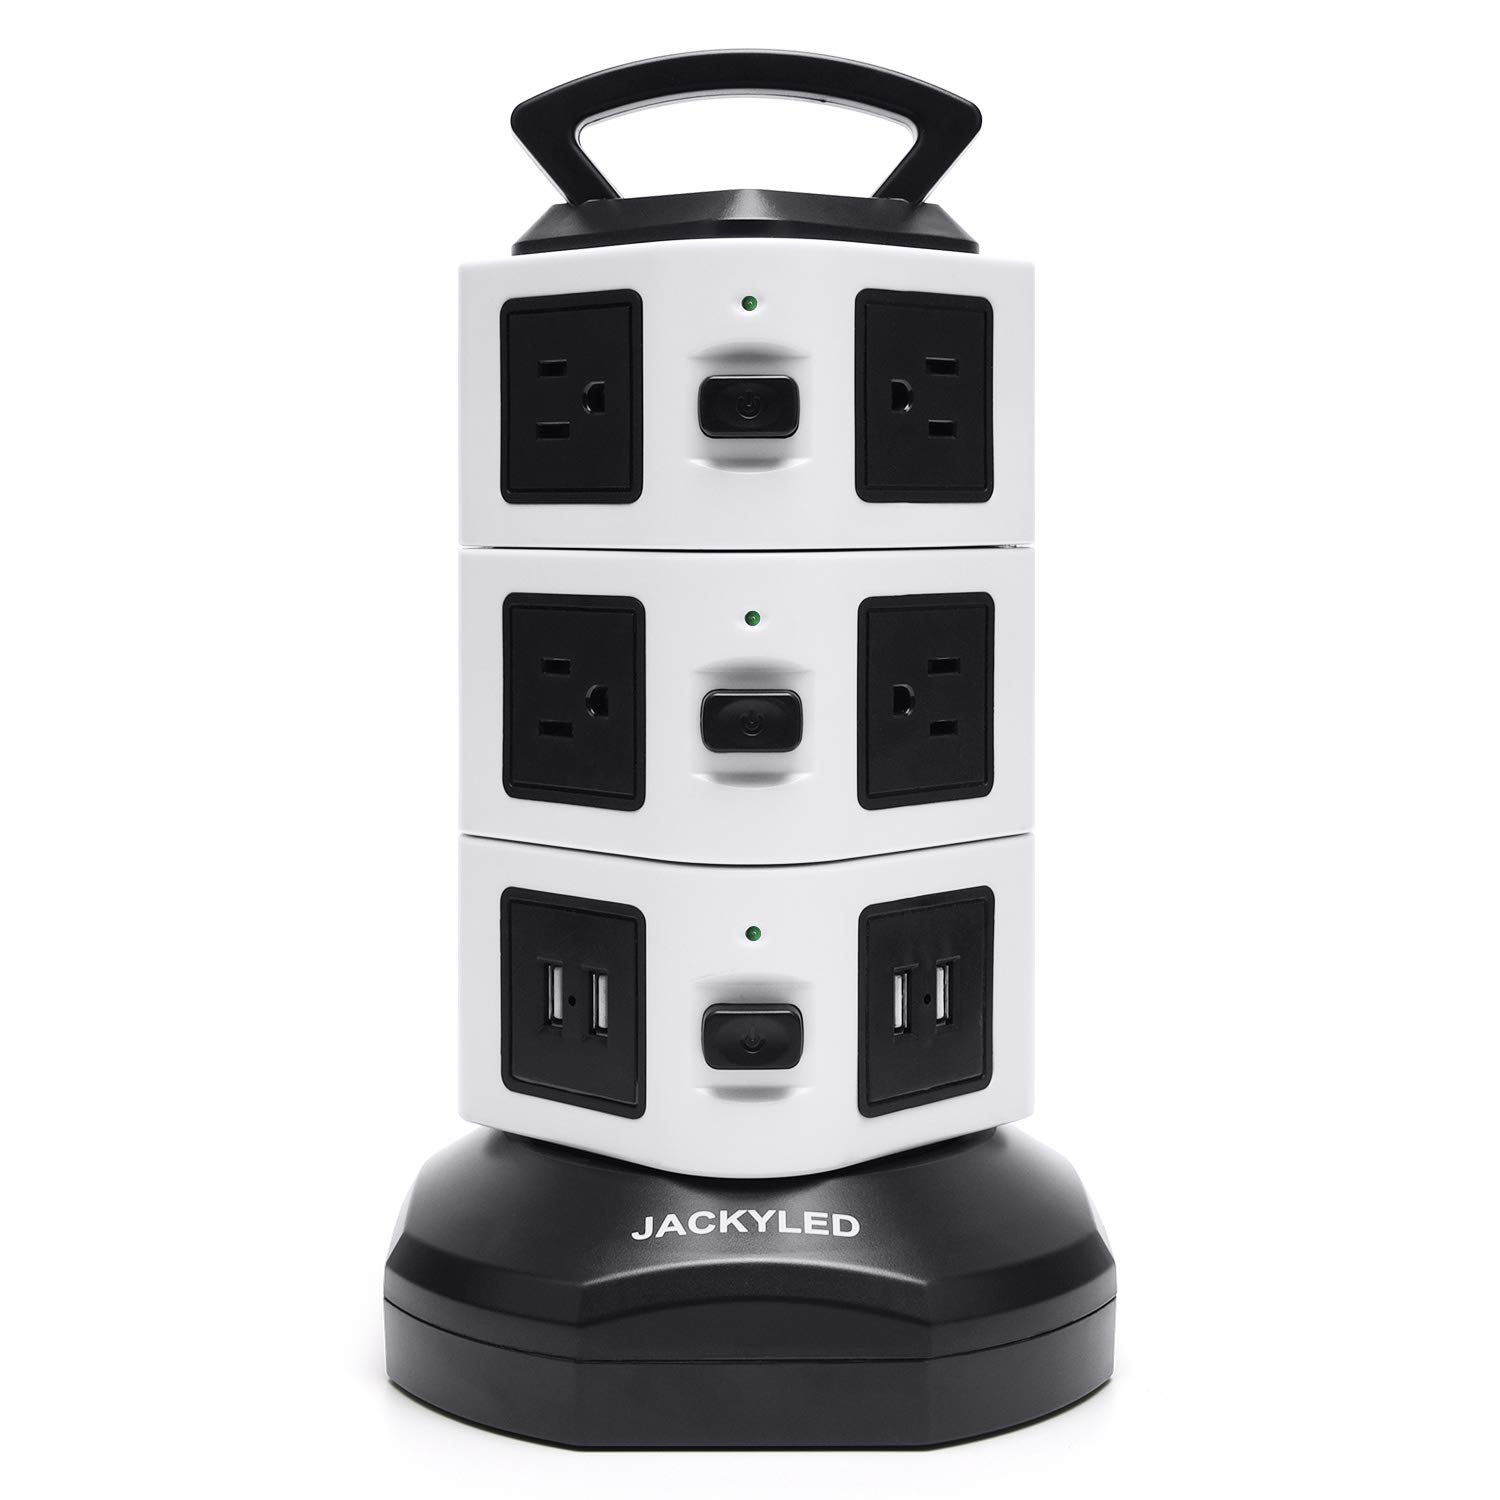 Power Strip Tower JACKYLED Surge Protector Protected Door Electric Charging Station 3000W 13A 16AWG 10 Outlet Plugs with 4 USB Slot + 6ft Cord Wire Extension Universal Socket for PC Laptops Mobile